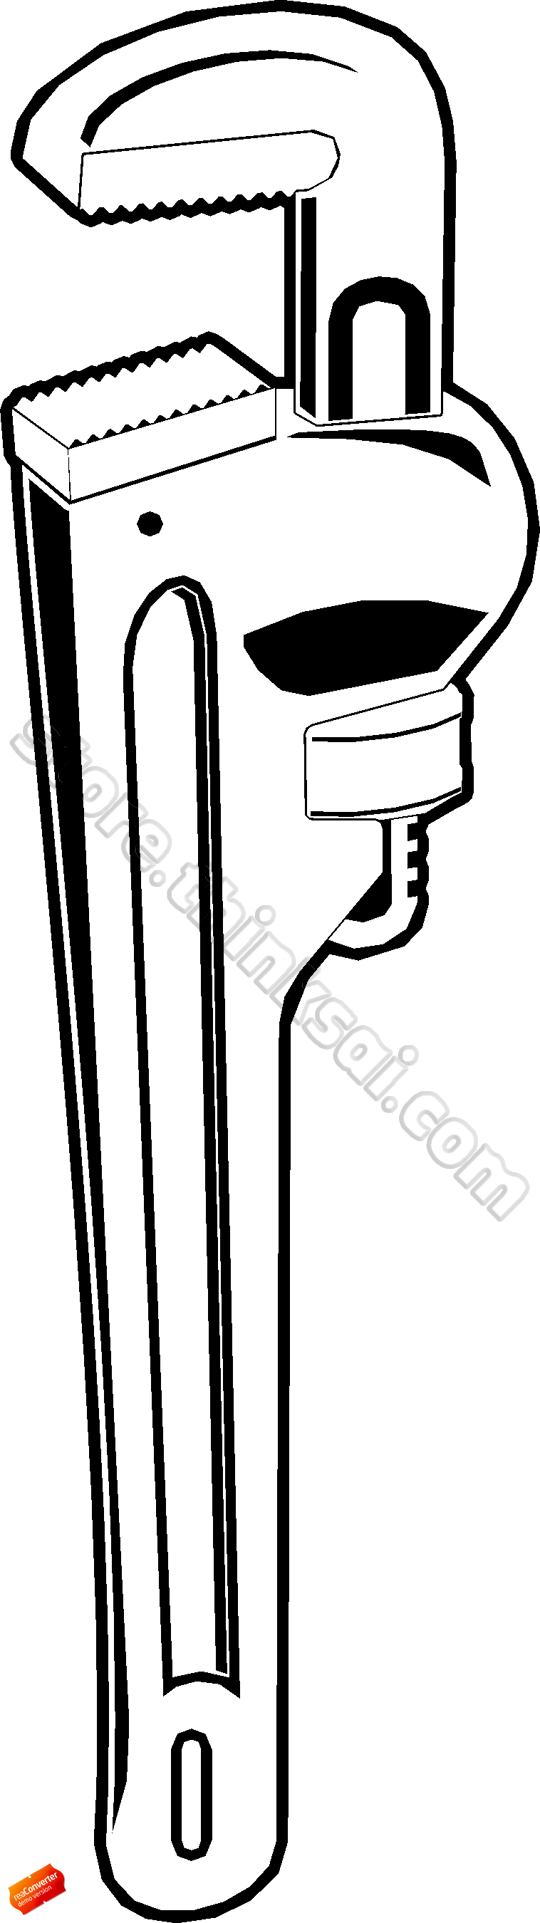 Plumbing Wrench Clipart.